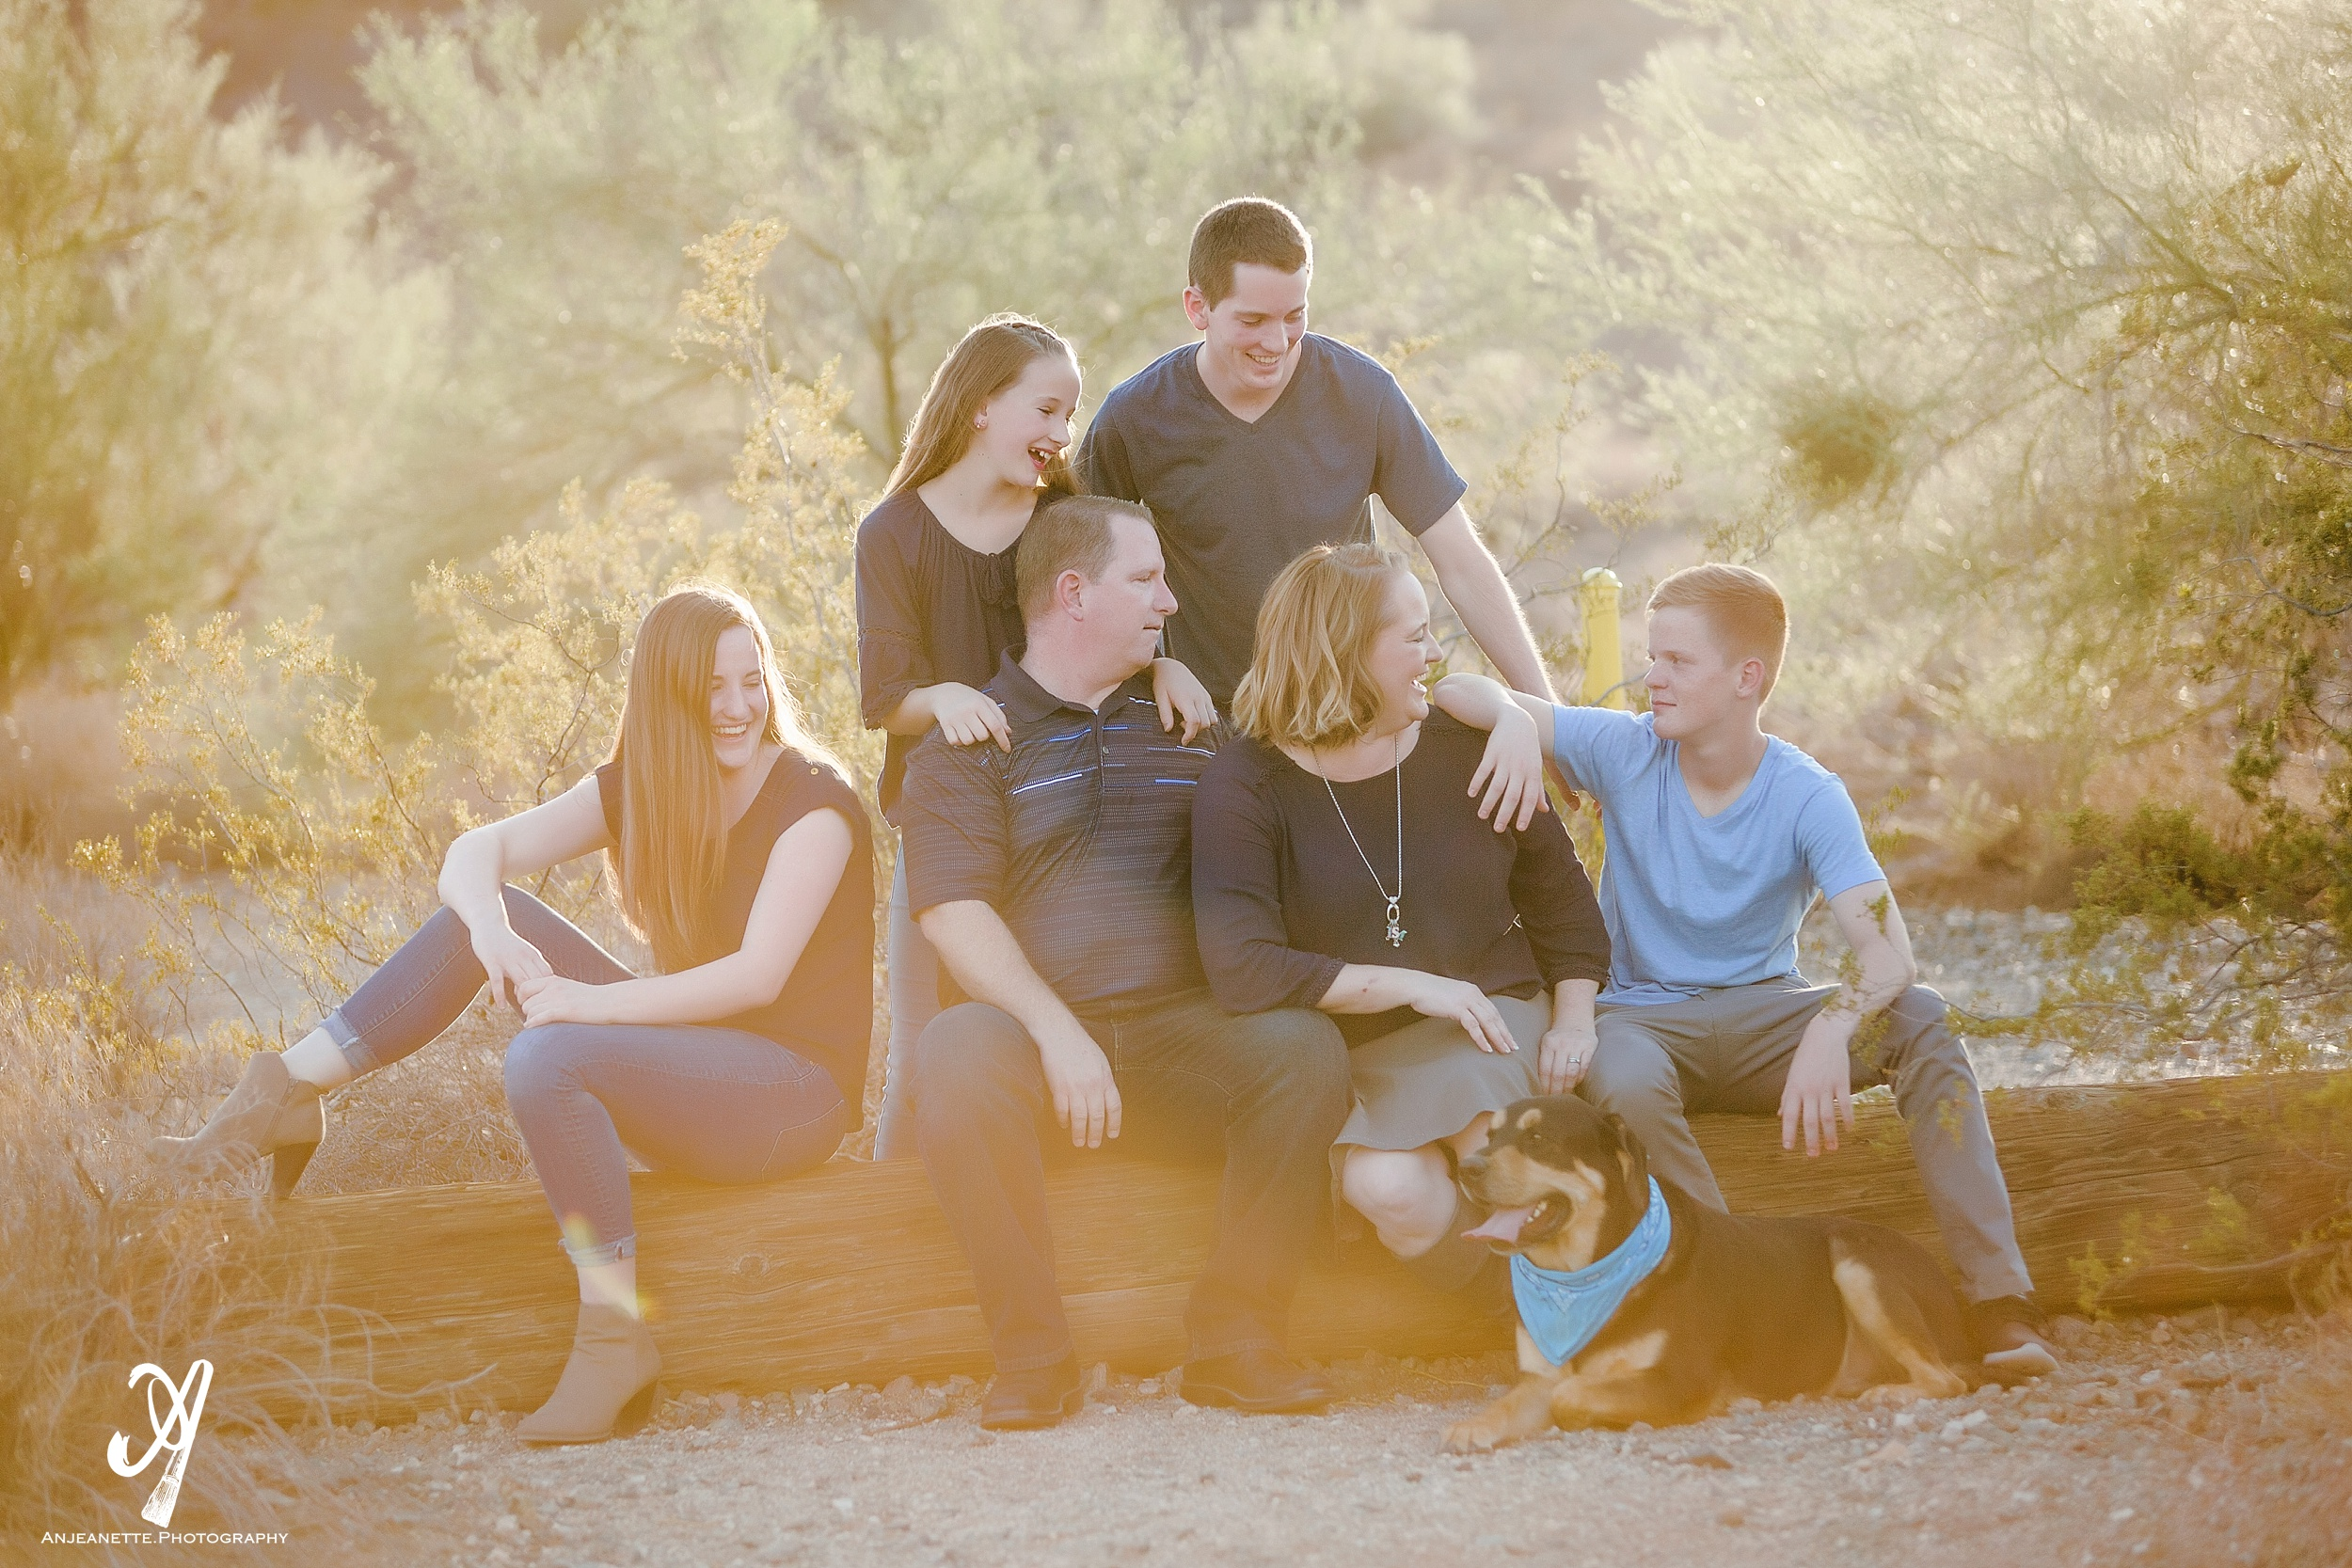 family pictures Peoria & Phoenix Arizona by children photo portrait artist Anjeanette Photography Glendale Az